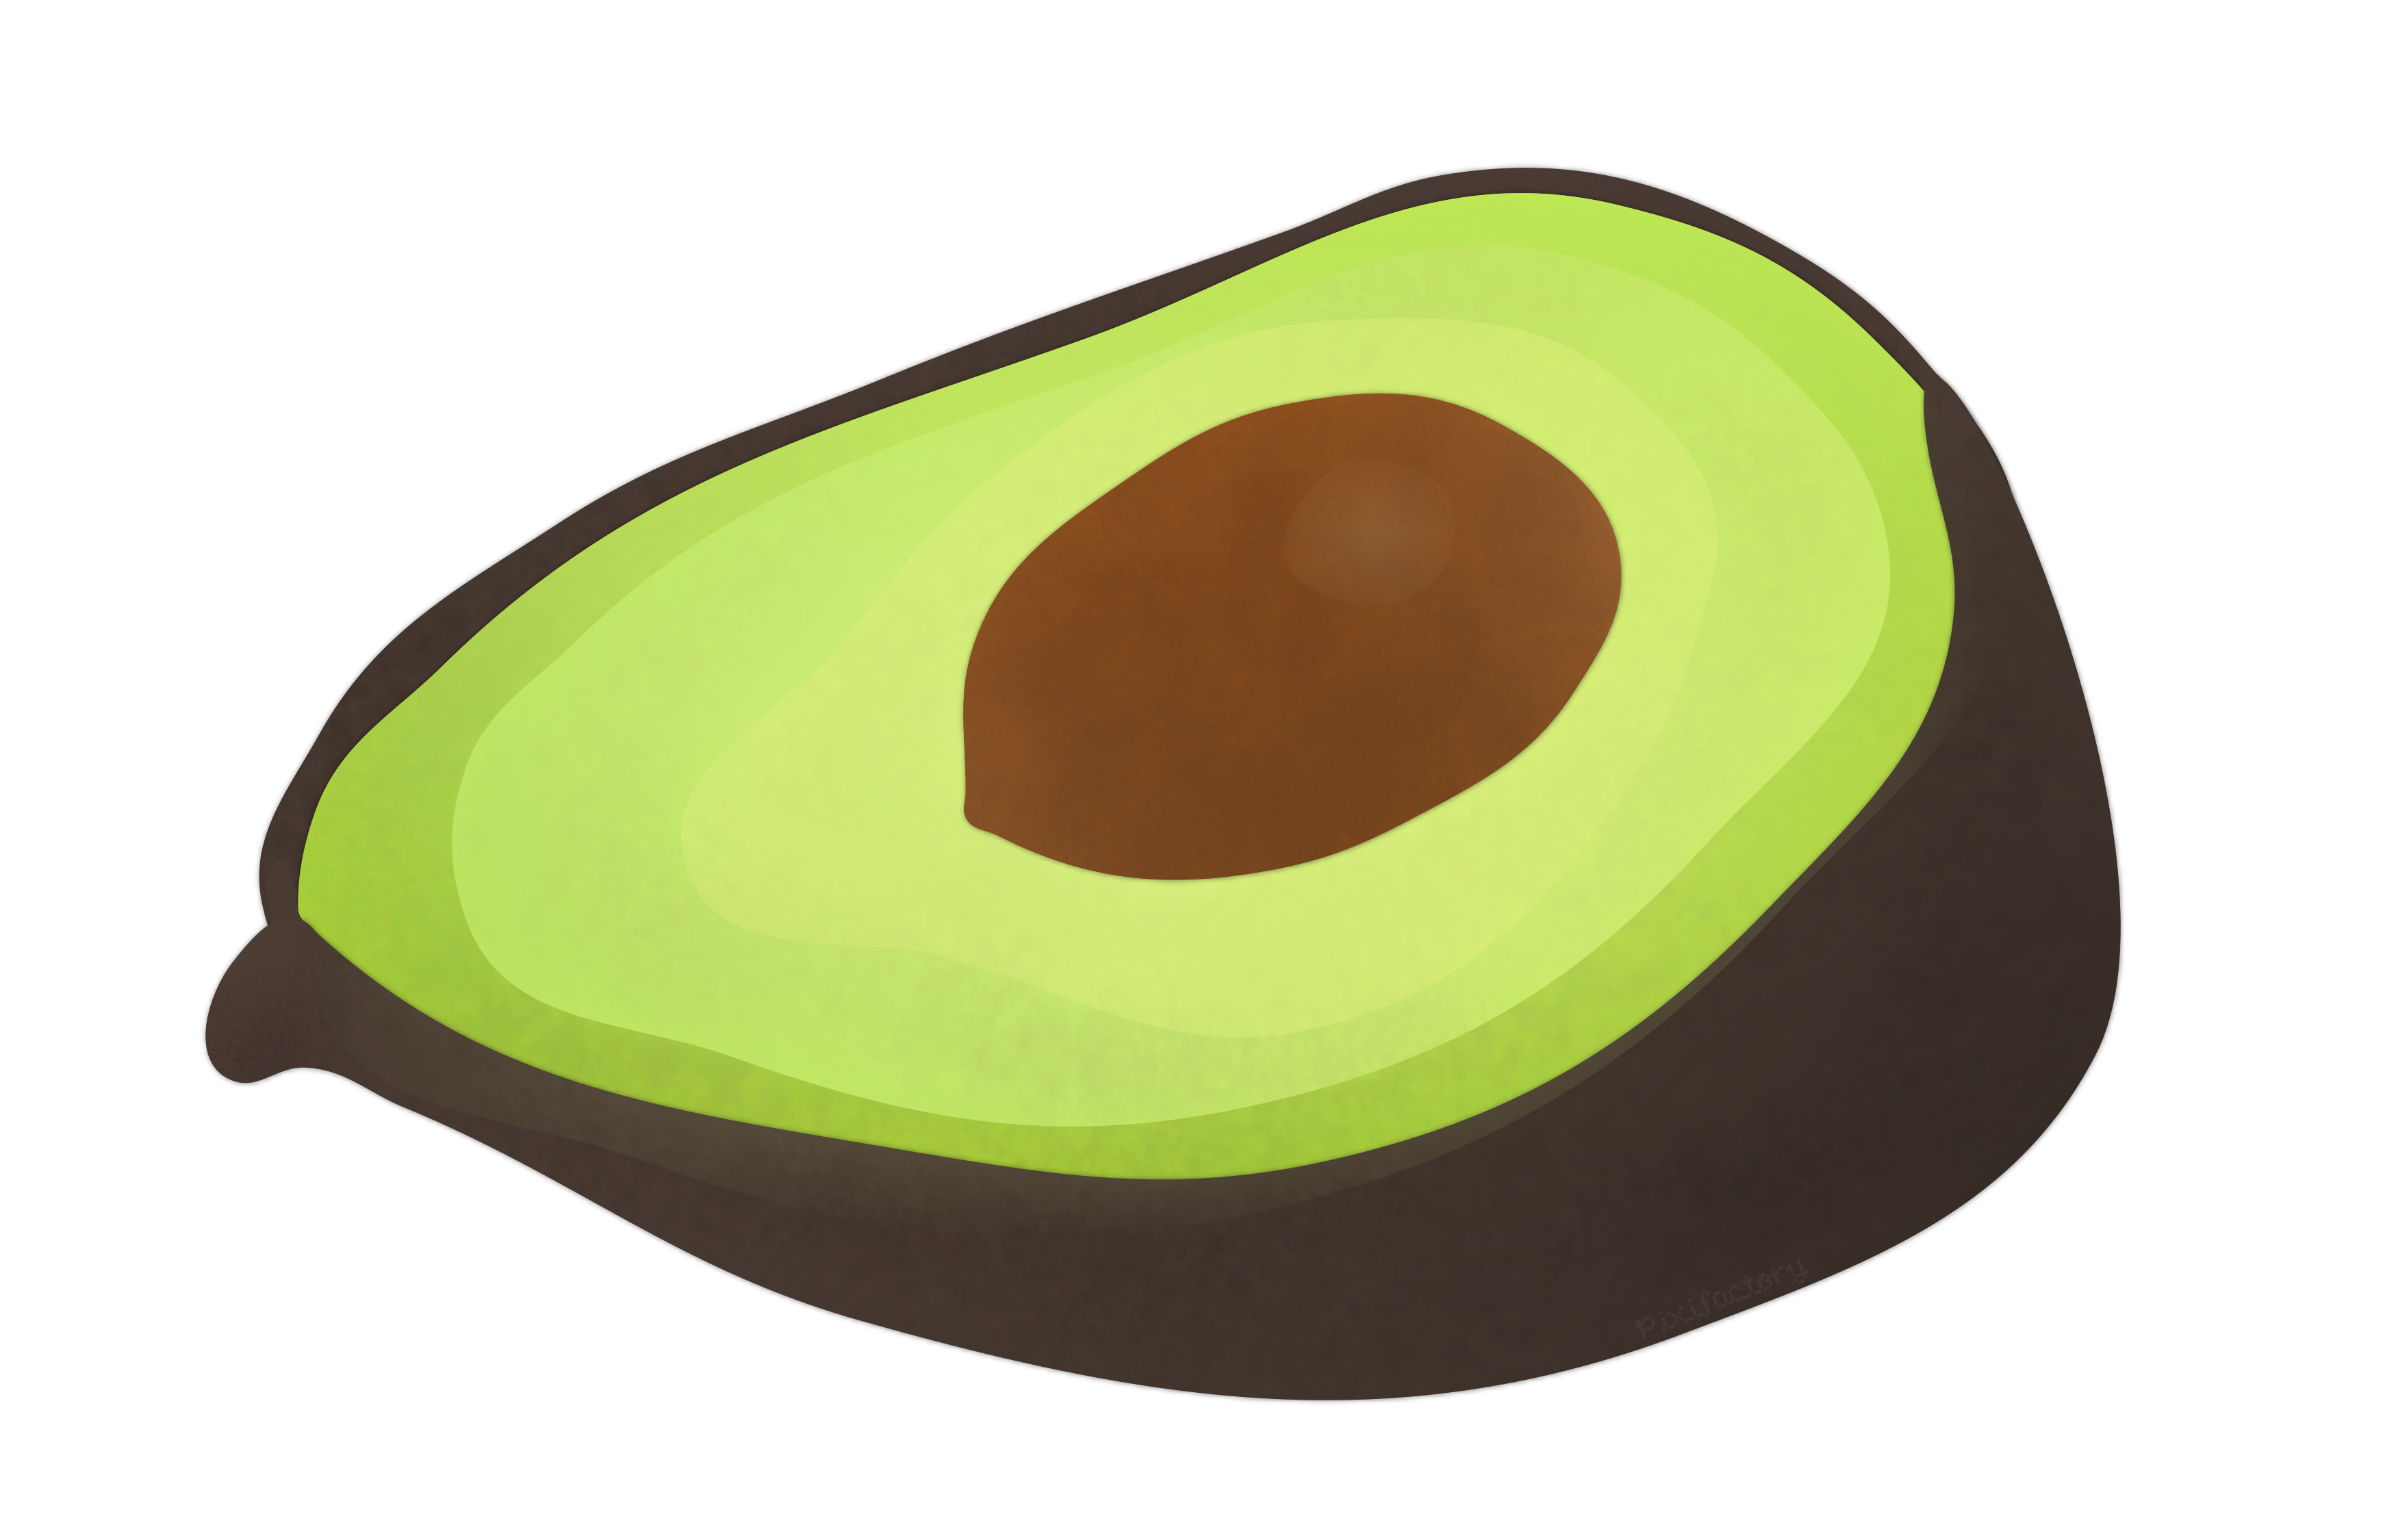 Clipart with transparent background avocado.